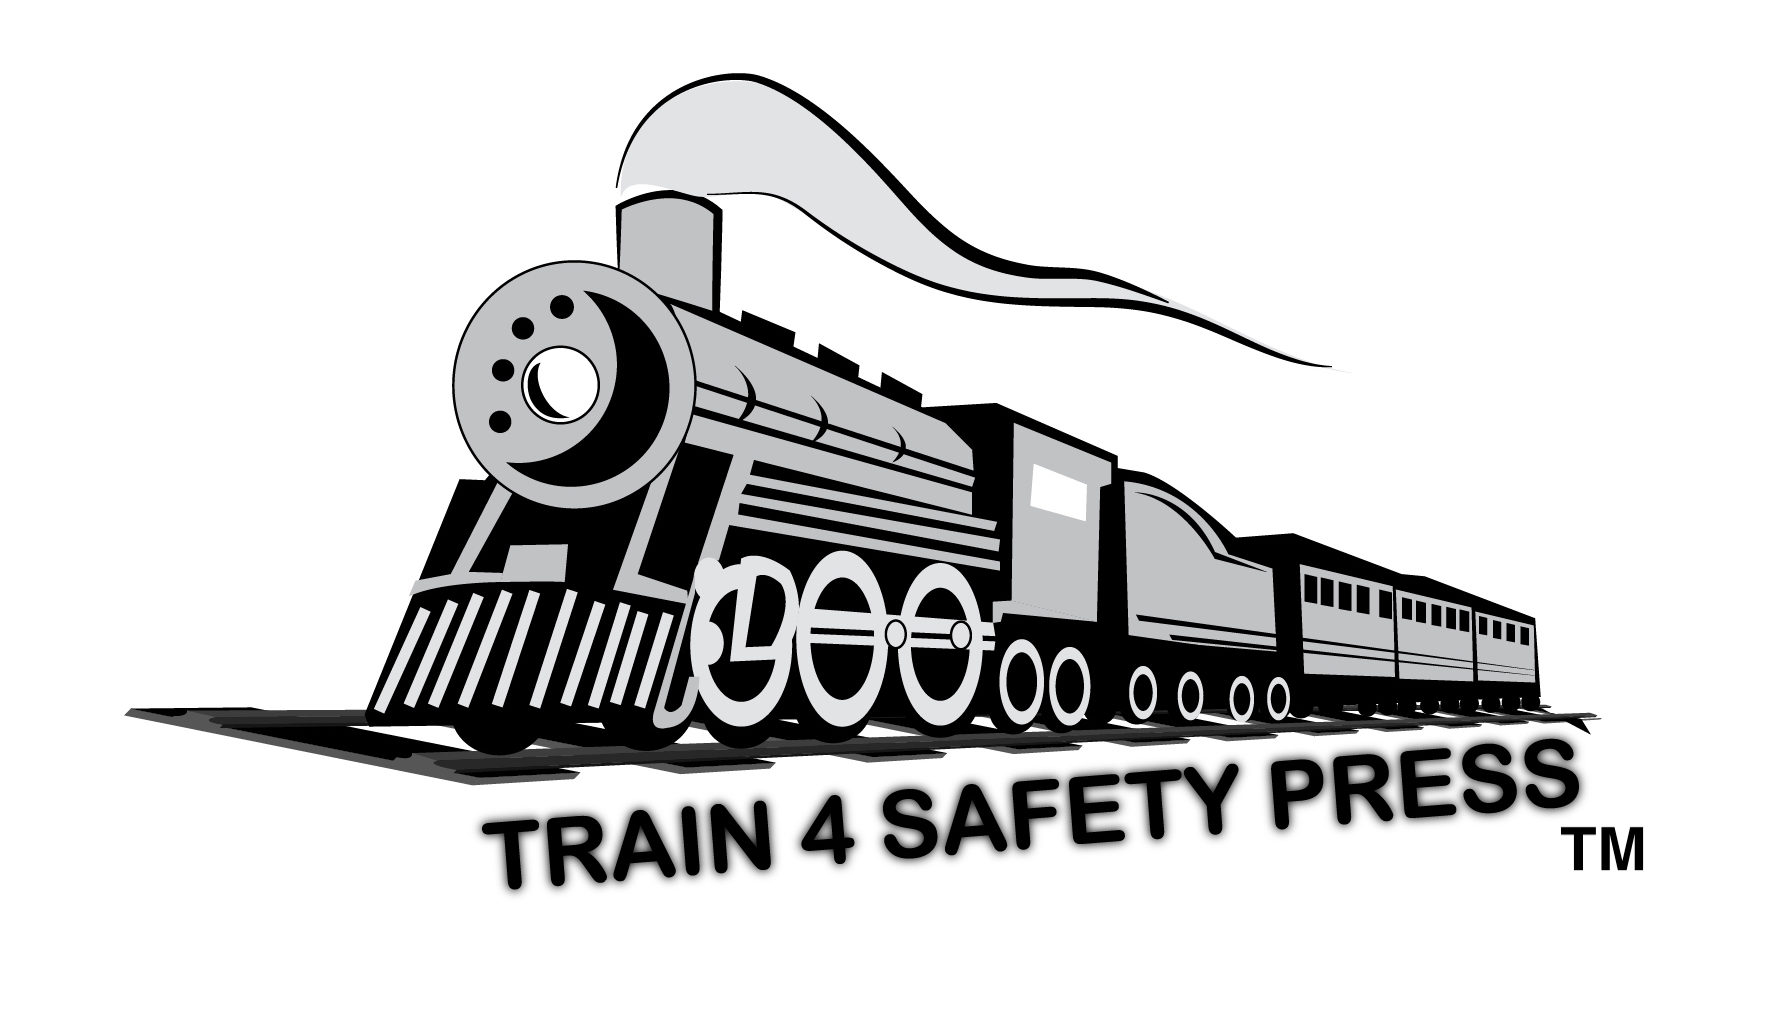 Train 4 Safety Press